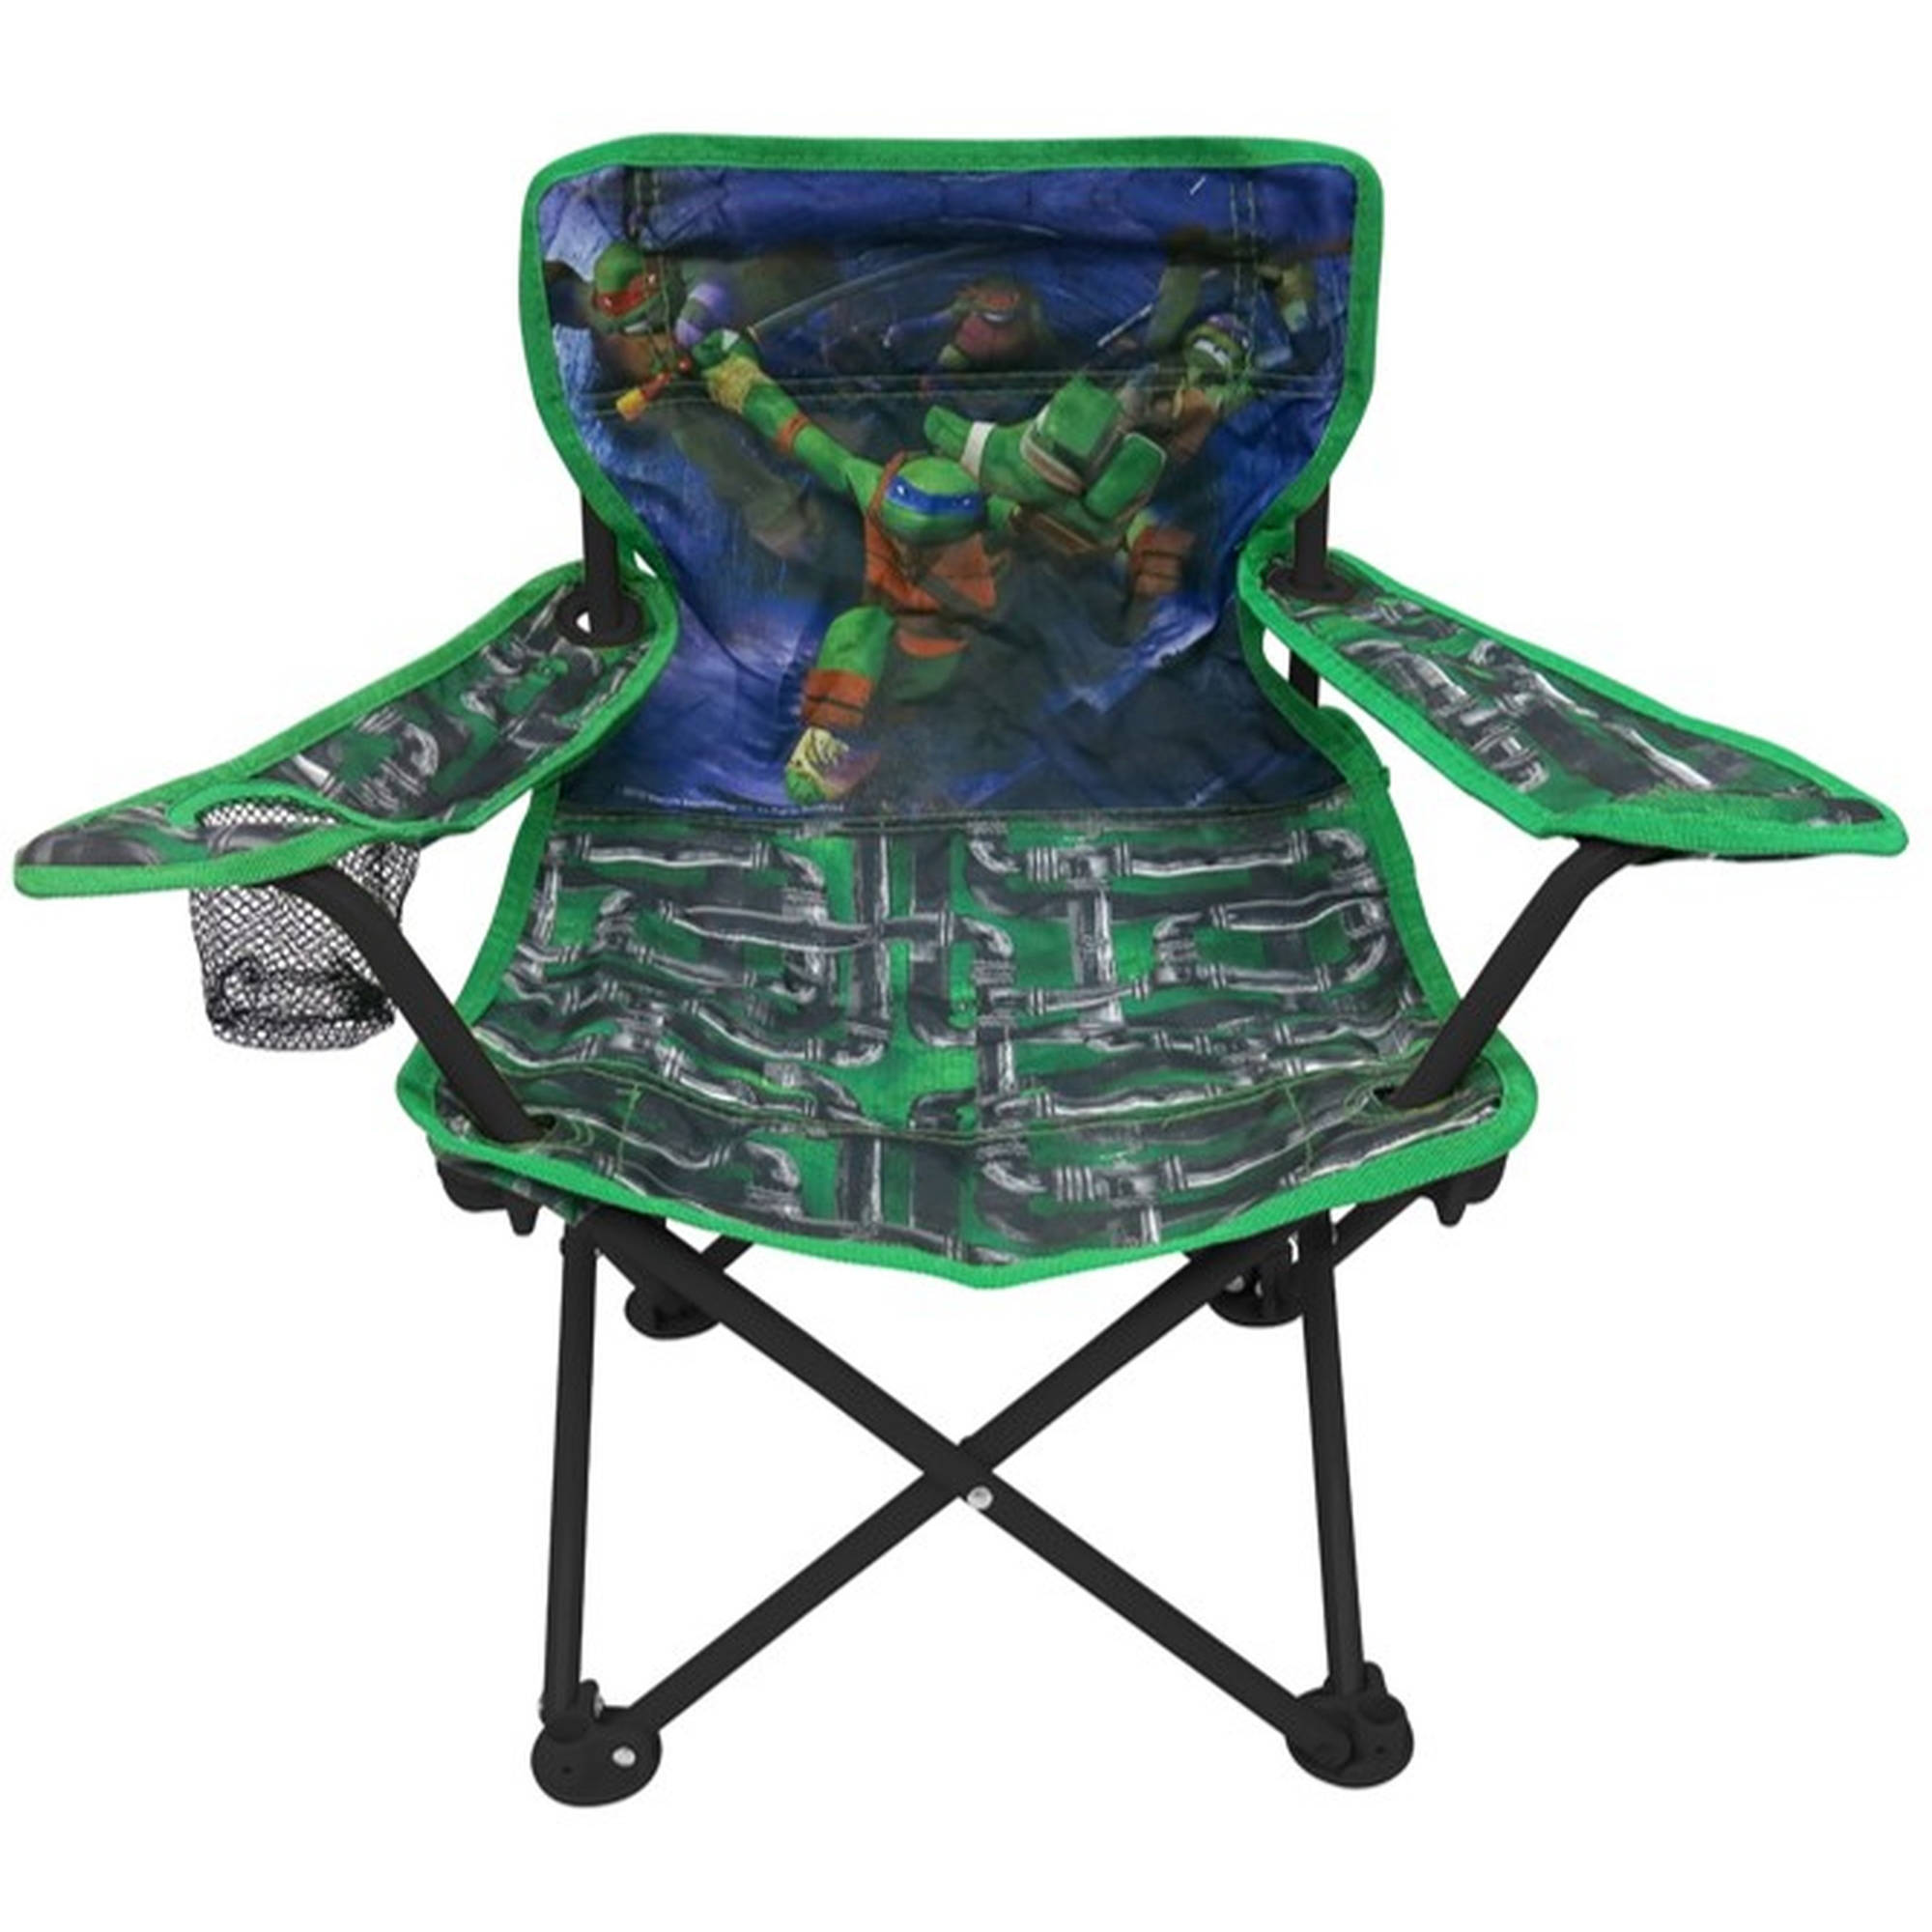 Nickelodeon Teenage Mutant Ninja Turtles Fold 'N Go Chair